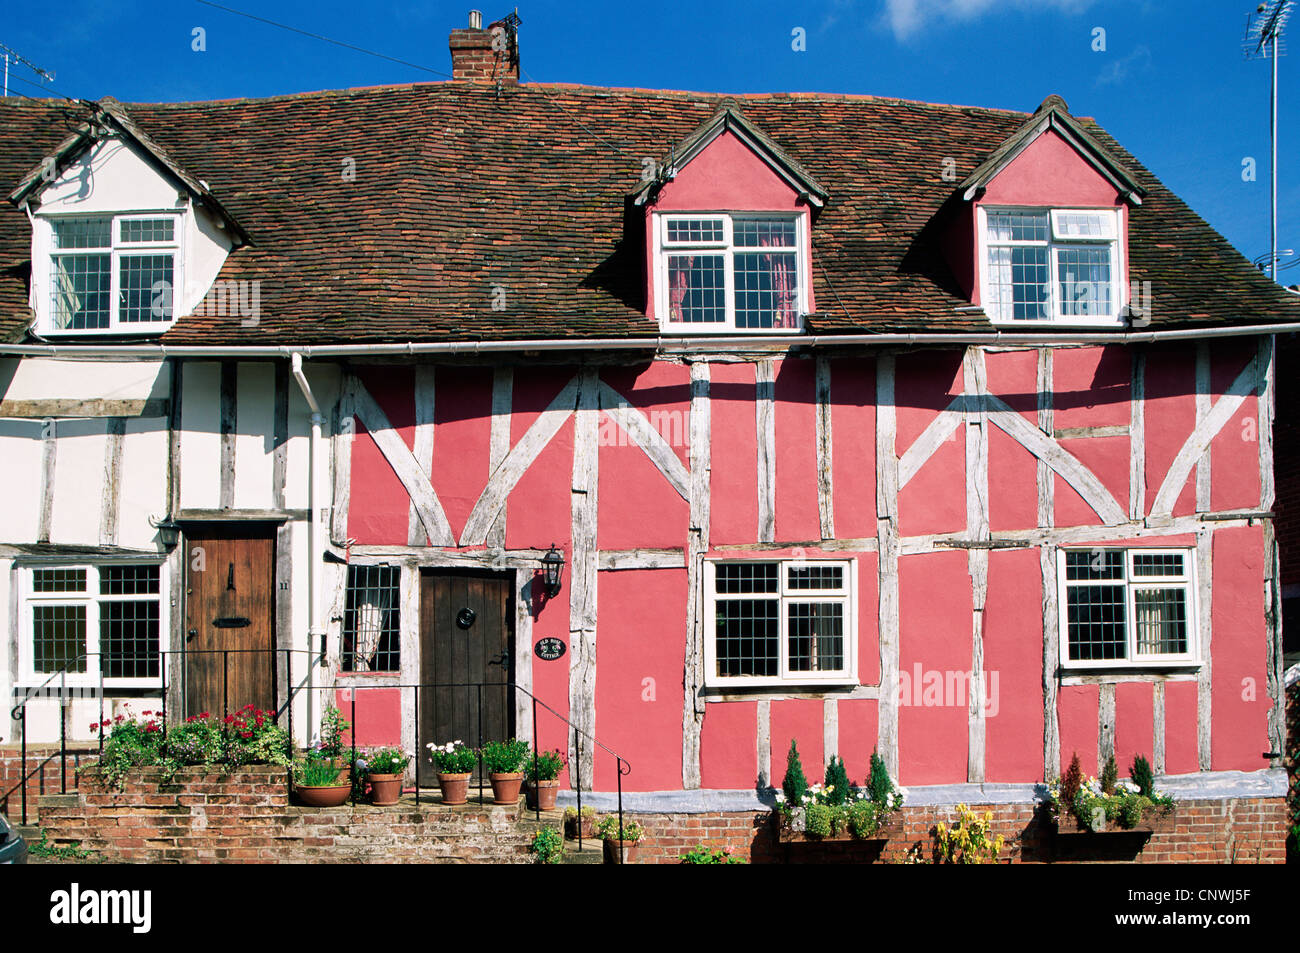 England, Constable Country, Suffolk, Lavenham, Timbered Houses - Stock Image